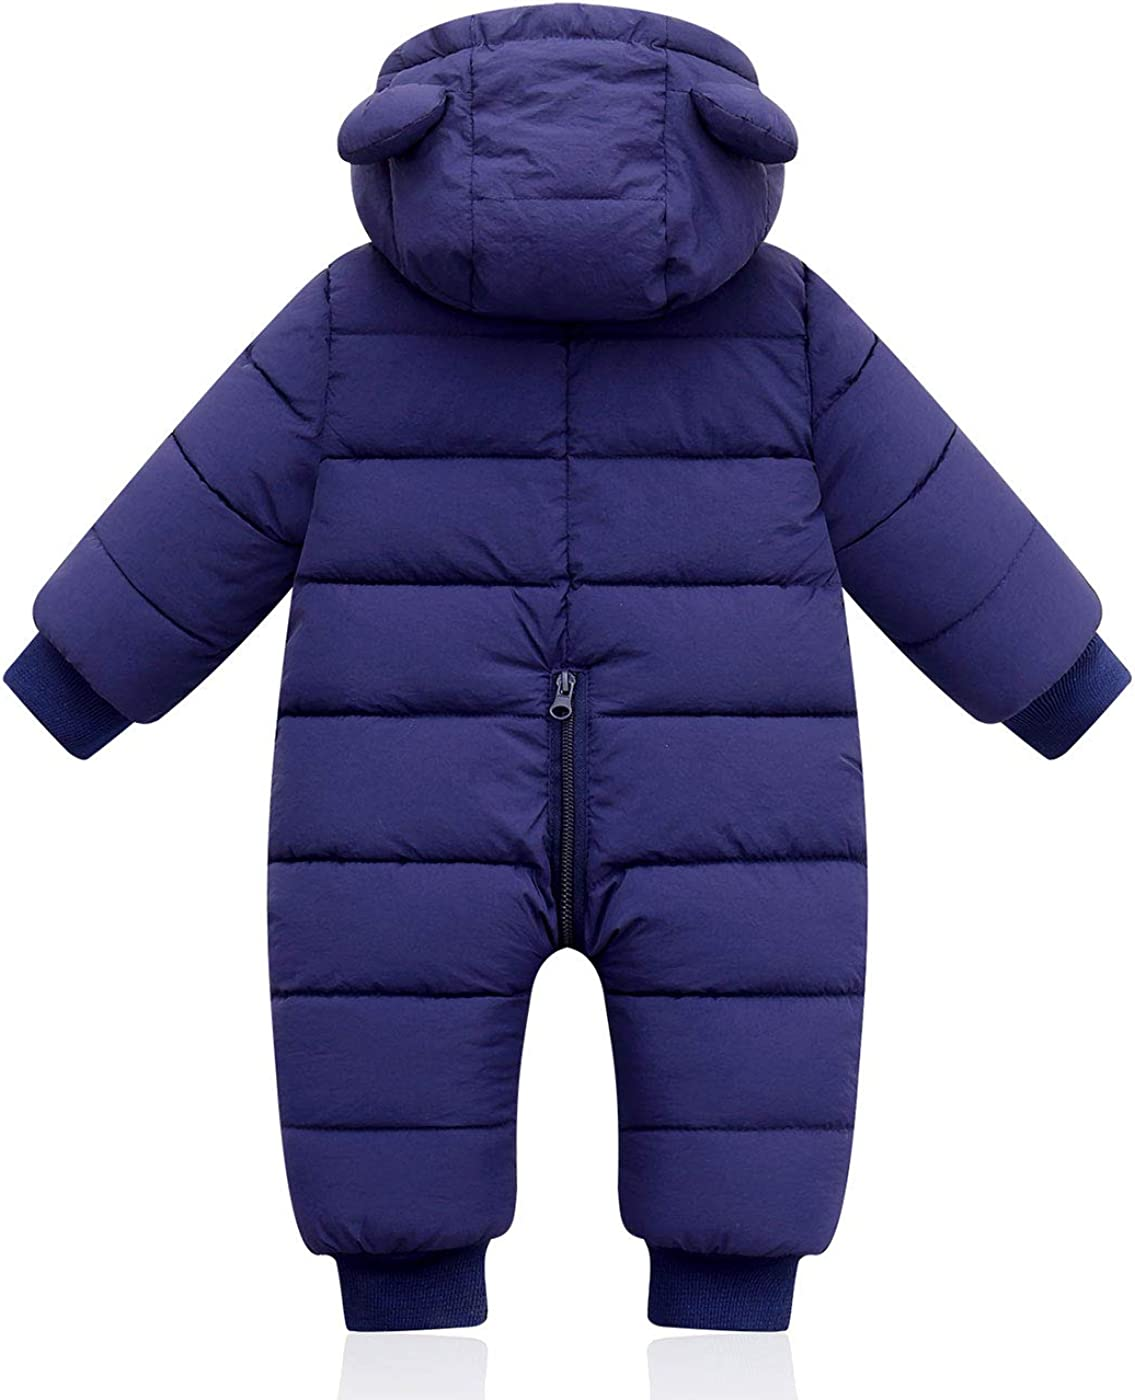 Maeau Baby Snowsuit with Hood Boy Girl Jumpsuit Winter Toddler Winter Clothes Coat Baby Romper Hoodie Infant Outwear Ski Suit Kids 3-36 Months